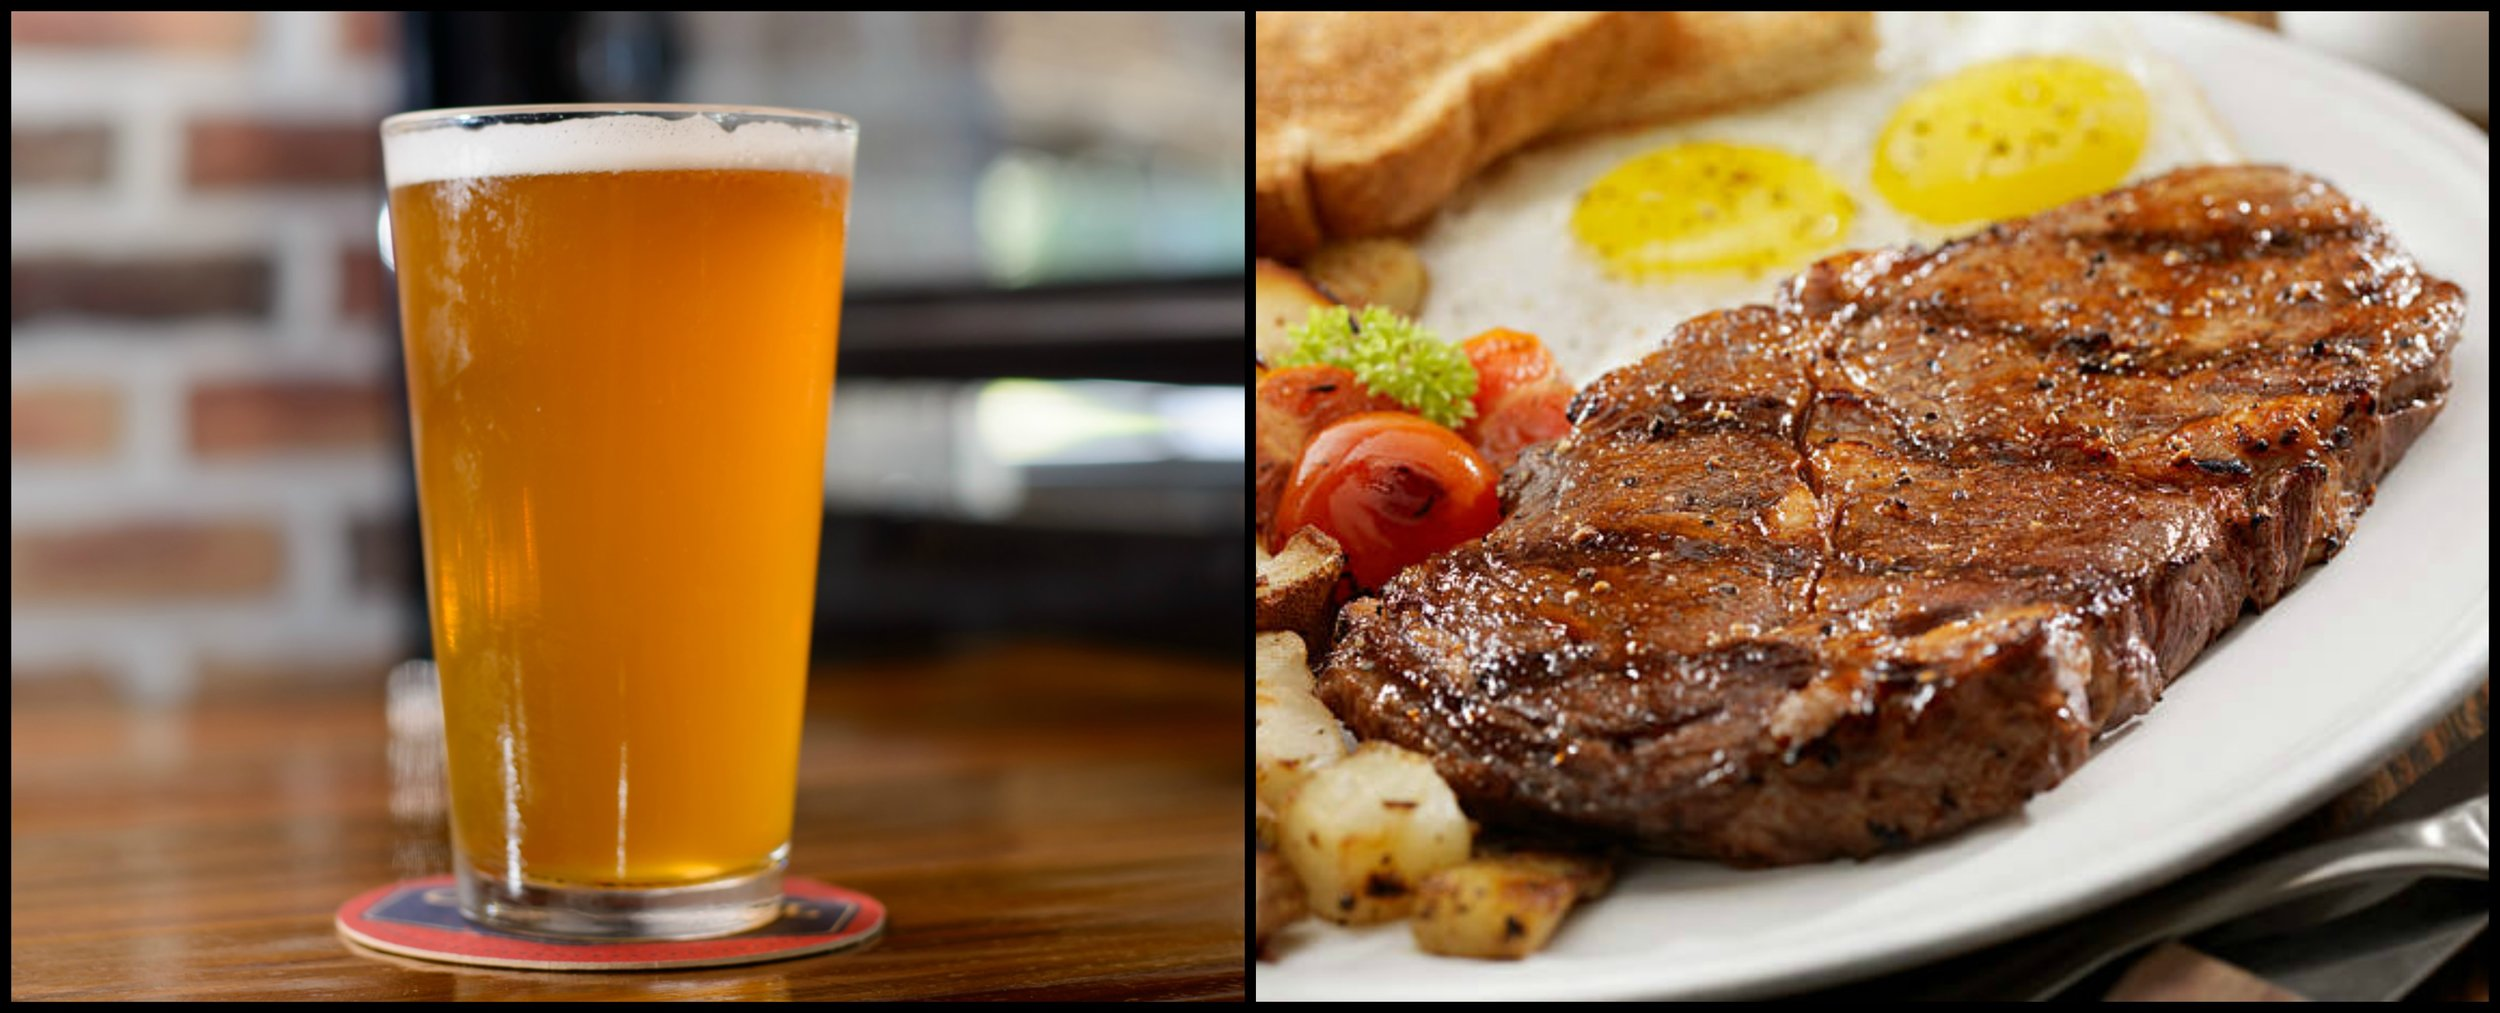 Join us this Sunday for a Steak & Eggs brunch, and Dad's first beer is on the house!